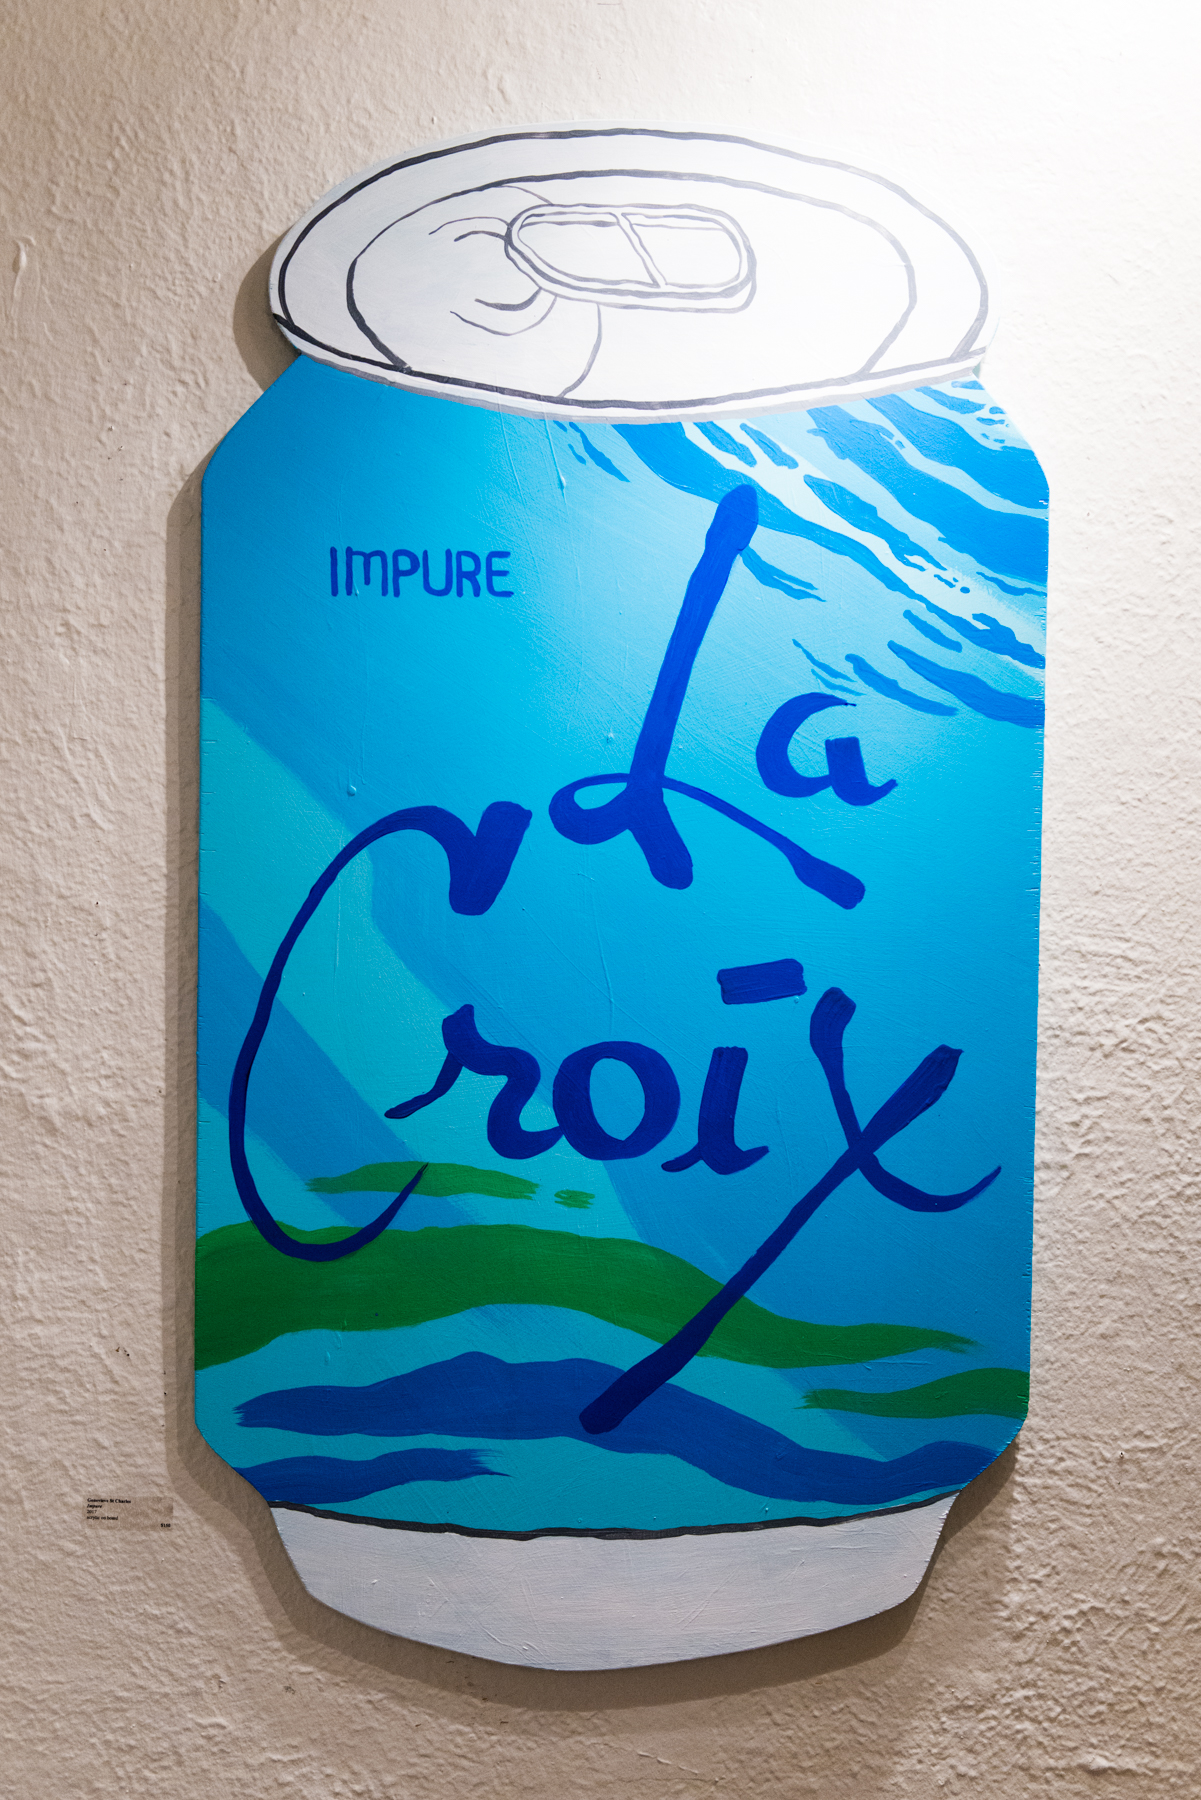 How about a long cold sip of Tinder Man Holding Fish? Fancy the flavor of a Werewolf Bar Mitzvah? Or perhaps a taste of a Post Bowie World? Seattle artist Genevieve St. Charles Monet reimagined the beloved brand La Croix as part of Capitol Hill Art Walk last night, December 14 2017. Food Art Collective, the space that hosted the show is a (you guessed it) food-centric art gallery that fully embraces the culture around food and everything that comes with it. Life imitates art, right? Crack open a cold one and click through prismatic photos of the show ahead. (Image: Chona Kasinger / Seattle Refined)